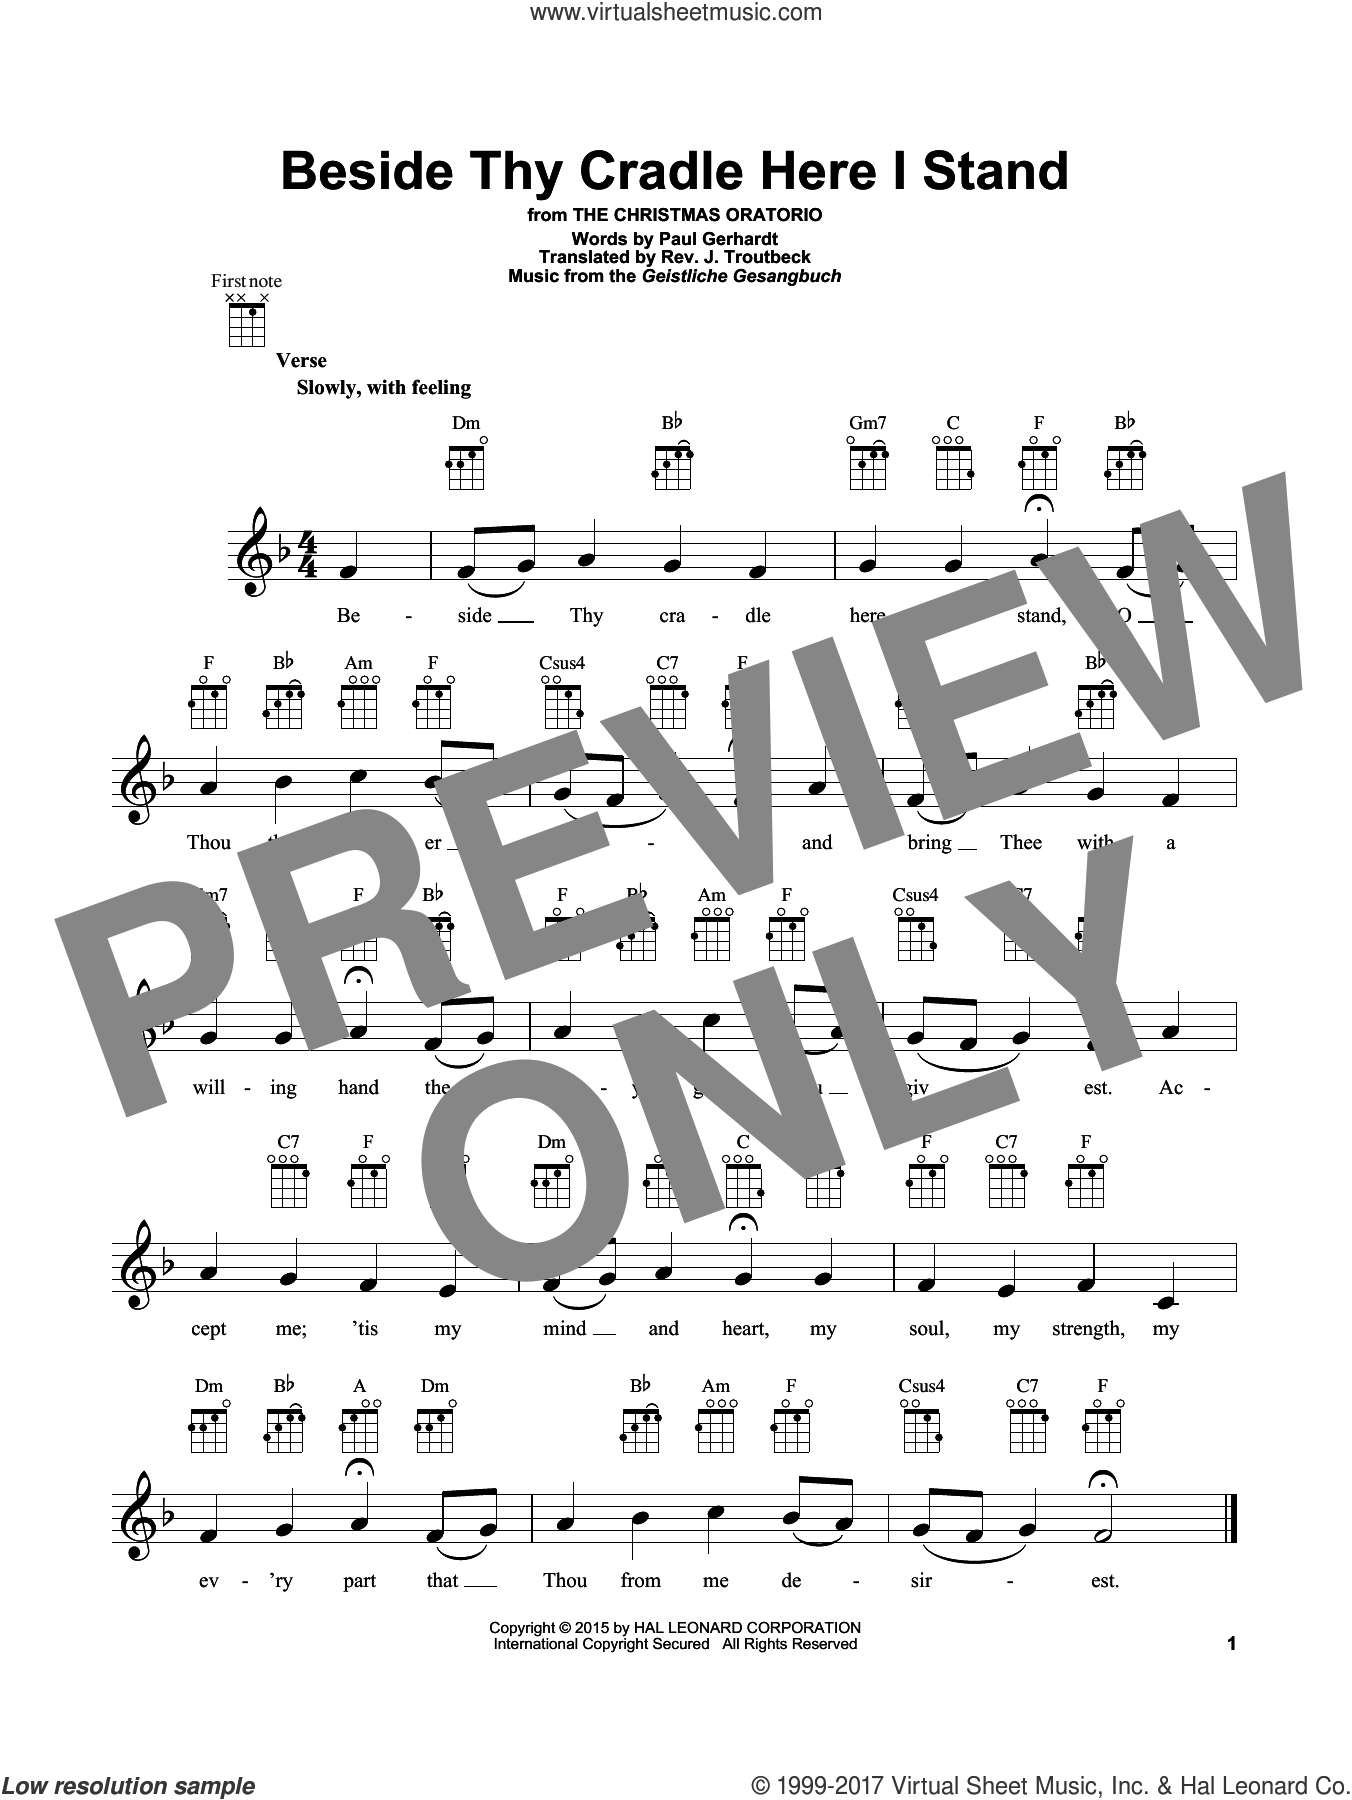 Beside Thy Cradle Here I Stand sheet music for ukulele by Paul Gerhardt, John Troutbeck and Geistliche Gesangbuch, intermediate skill level